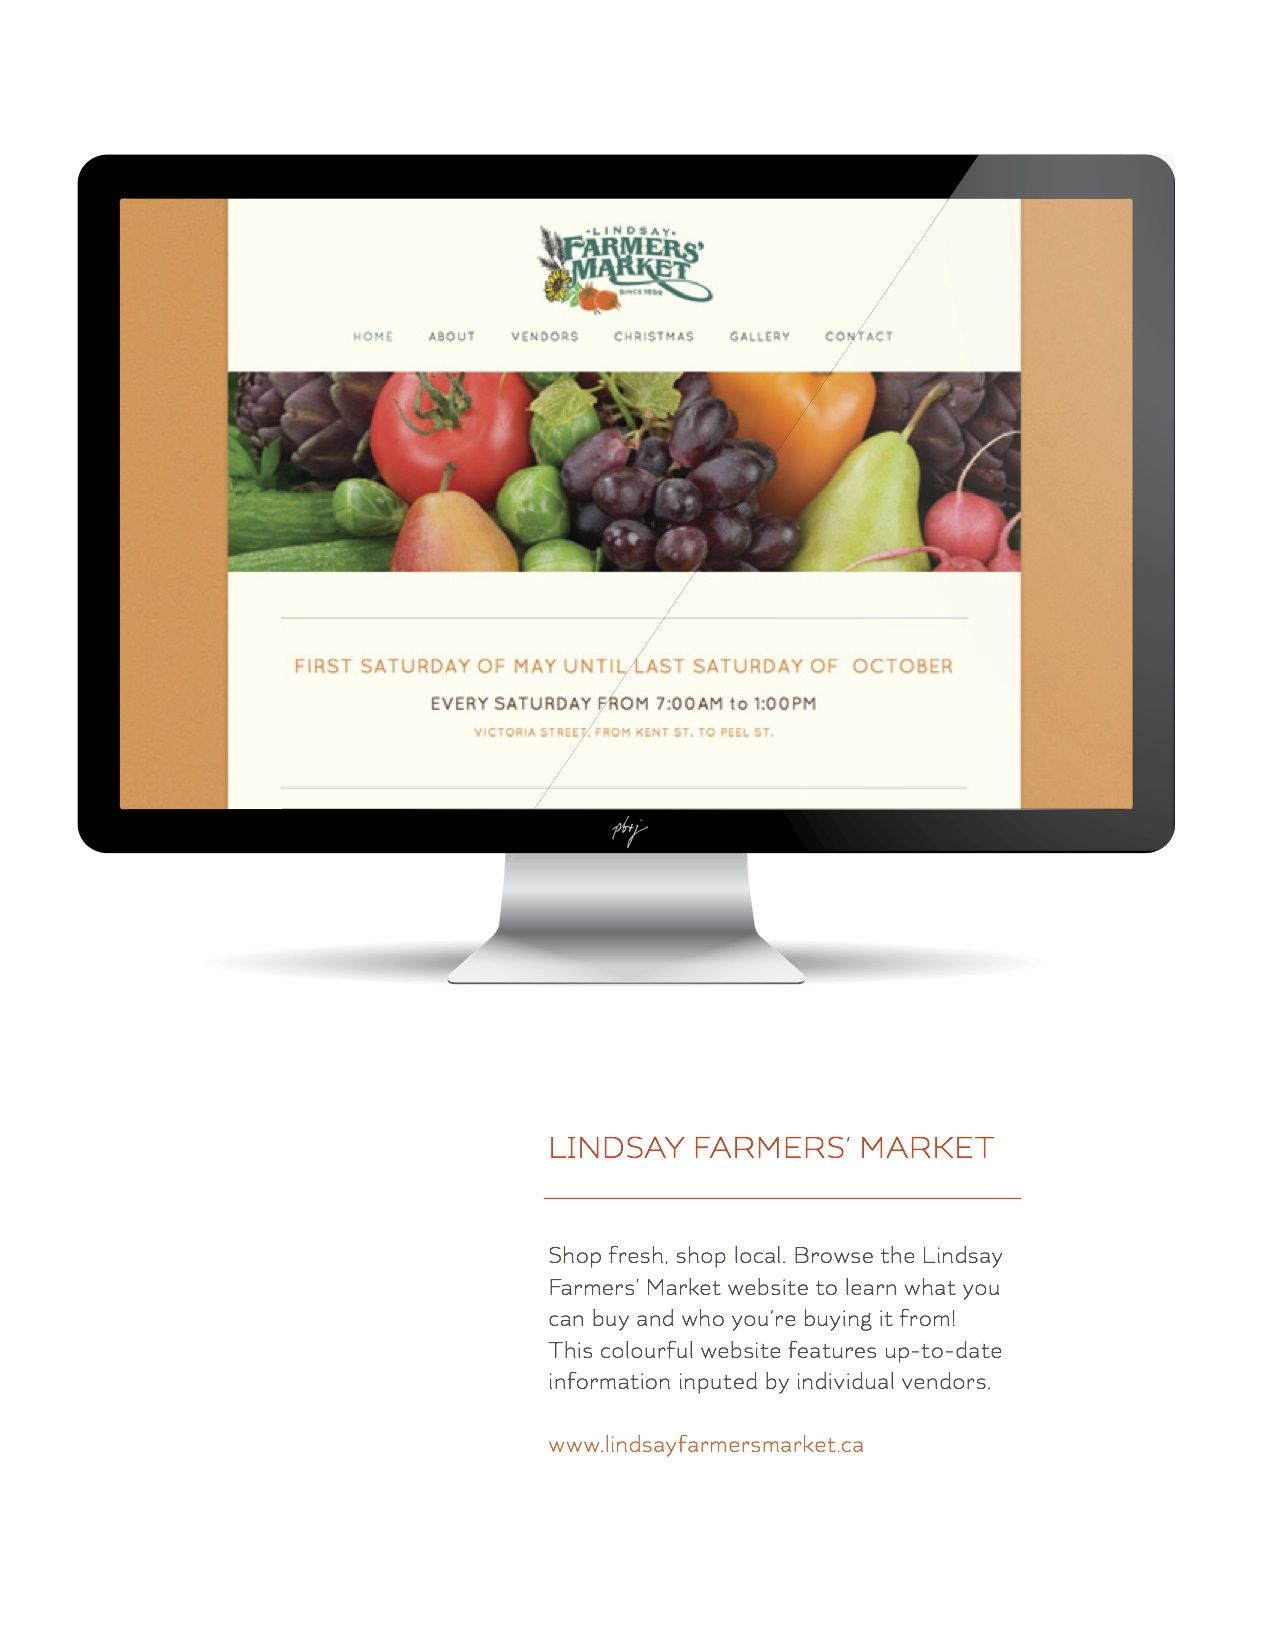 Lindsay Farmers' Market | Shop fresh, shop local. Browse the Lindsay Farmers' Market website to learn what you can buy and who you're buying it from! This colourful website features up-to-date information inputed by individual vendors.